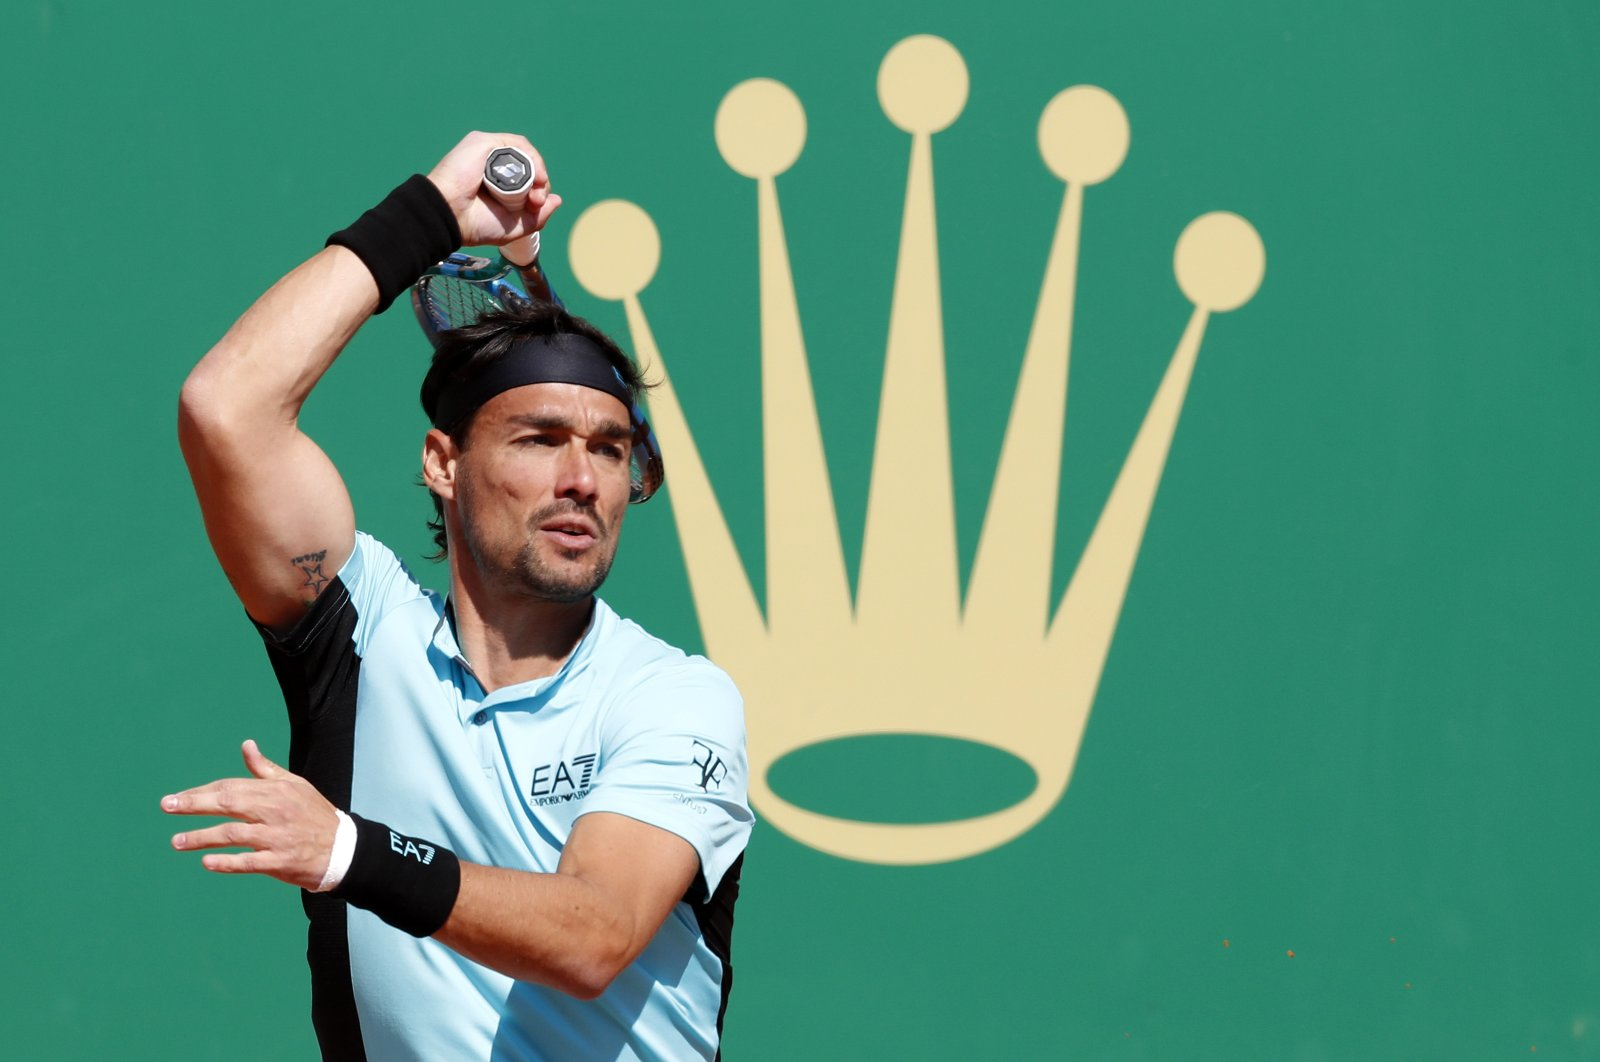 Italy's Fabio Fognini in action during his first-round match against Serbia's Miomir Kecmanovic at the Monte-Carlo Rolex Masters in Roquebrune Cap Martin, France, April 13, 2021. (EPA Photo)